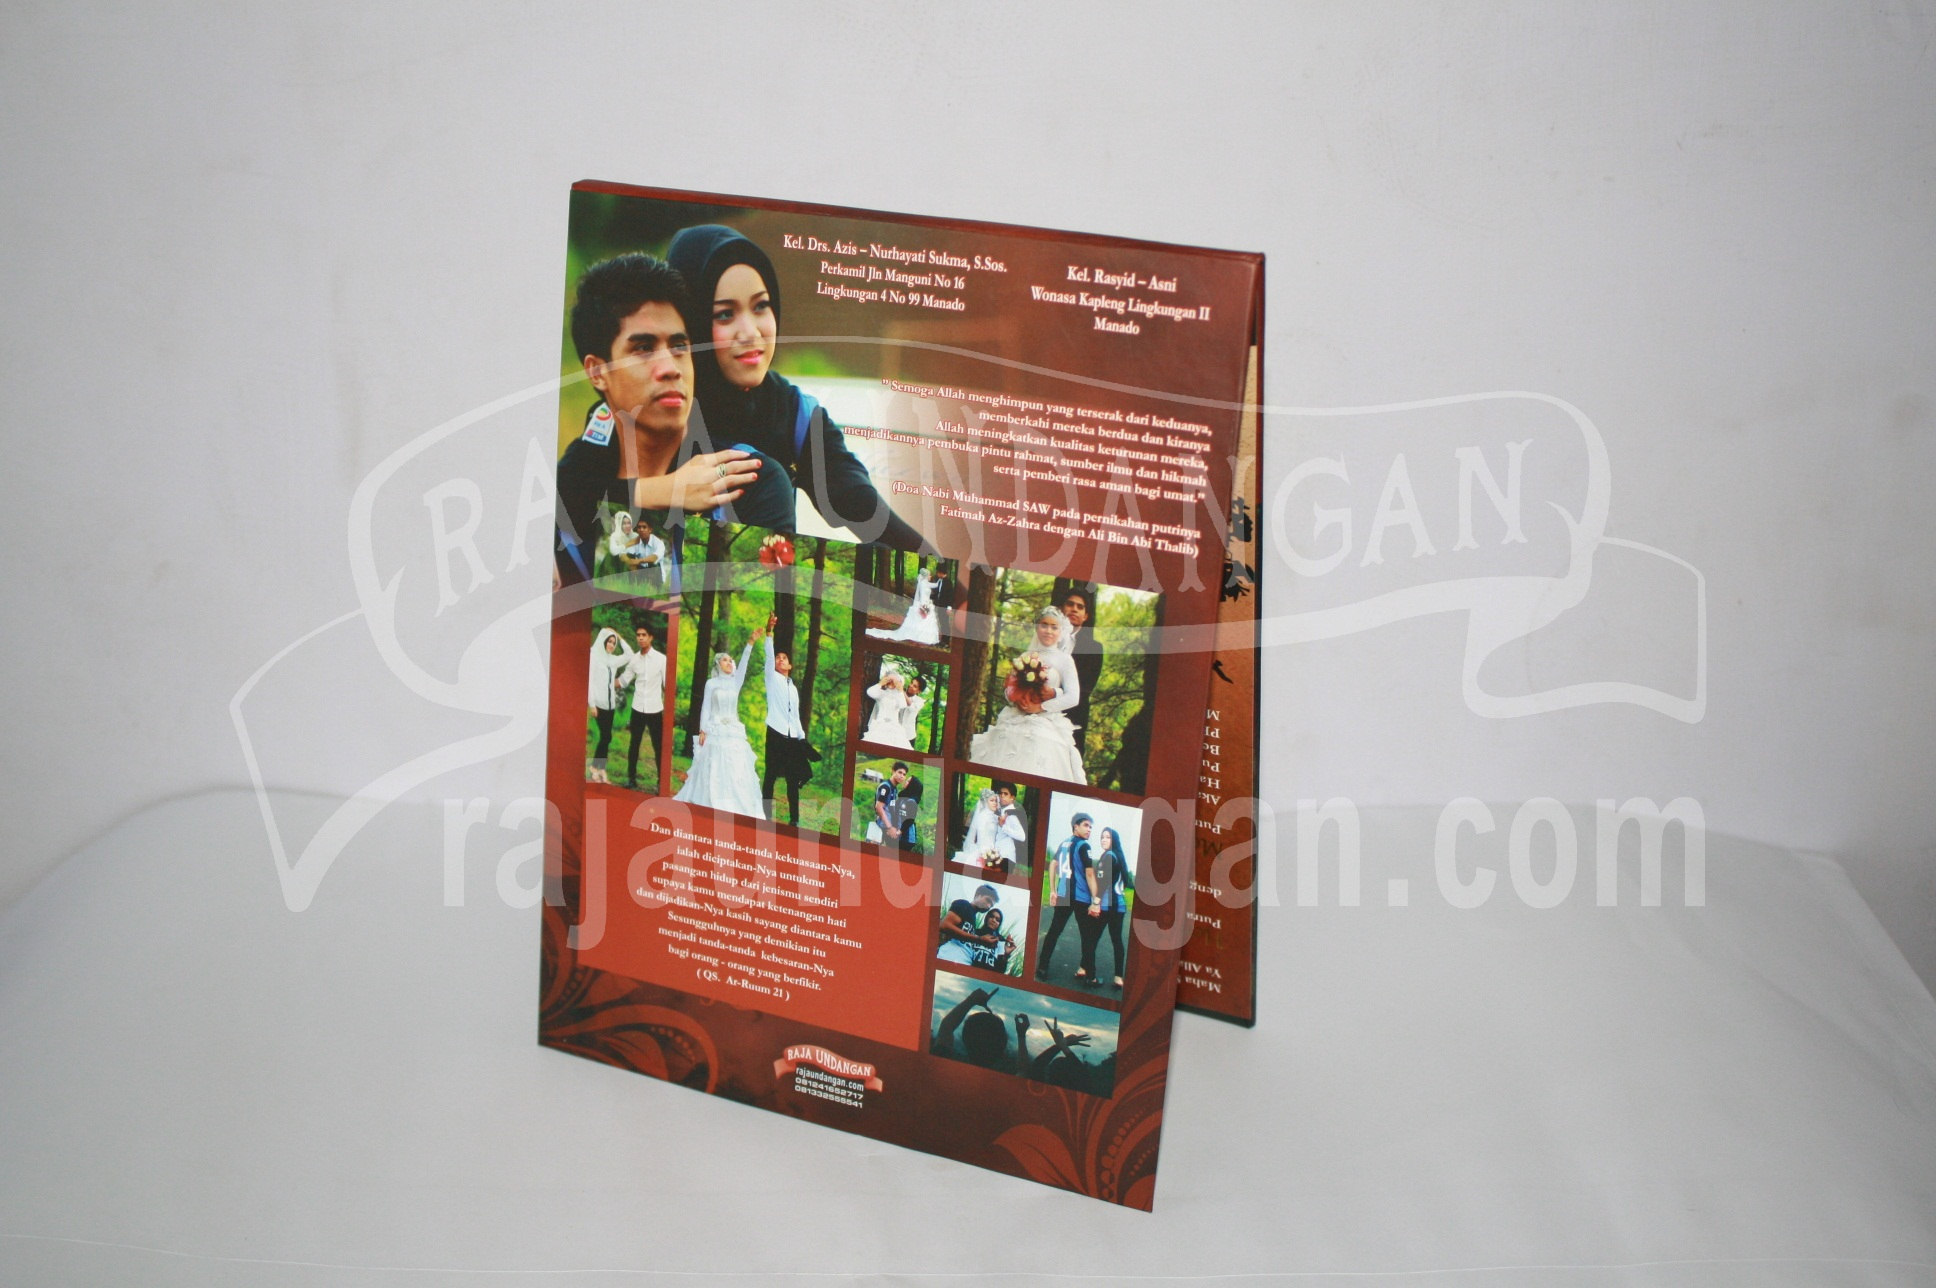 Undangan Pernikahan Hardcover Pop Up Heri dan Mona EDC 43 14 - Percetakan Wedding Invitations Eksklusif di Dukuh Setro